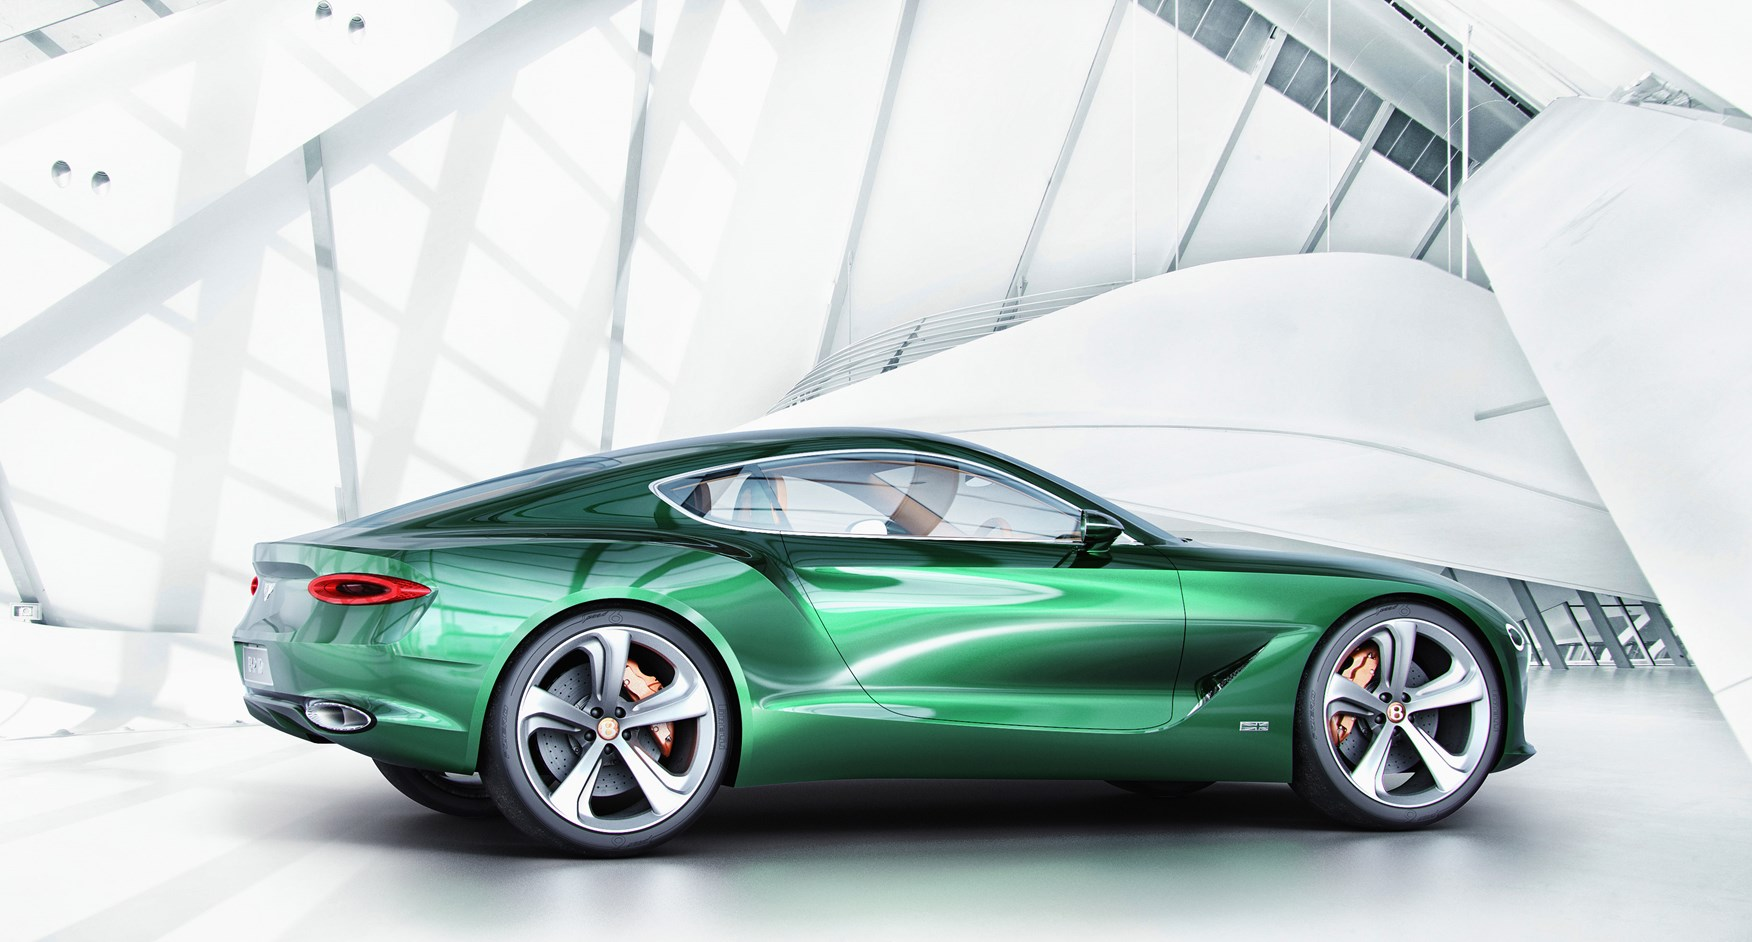 2 Door Cars 2018 >> Now That S More Like It Bentley Exp 10 Speed 6 Points To New Two